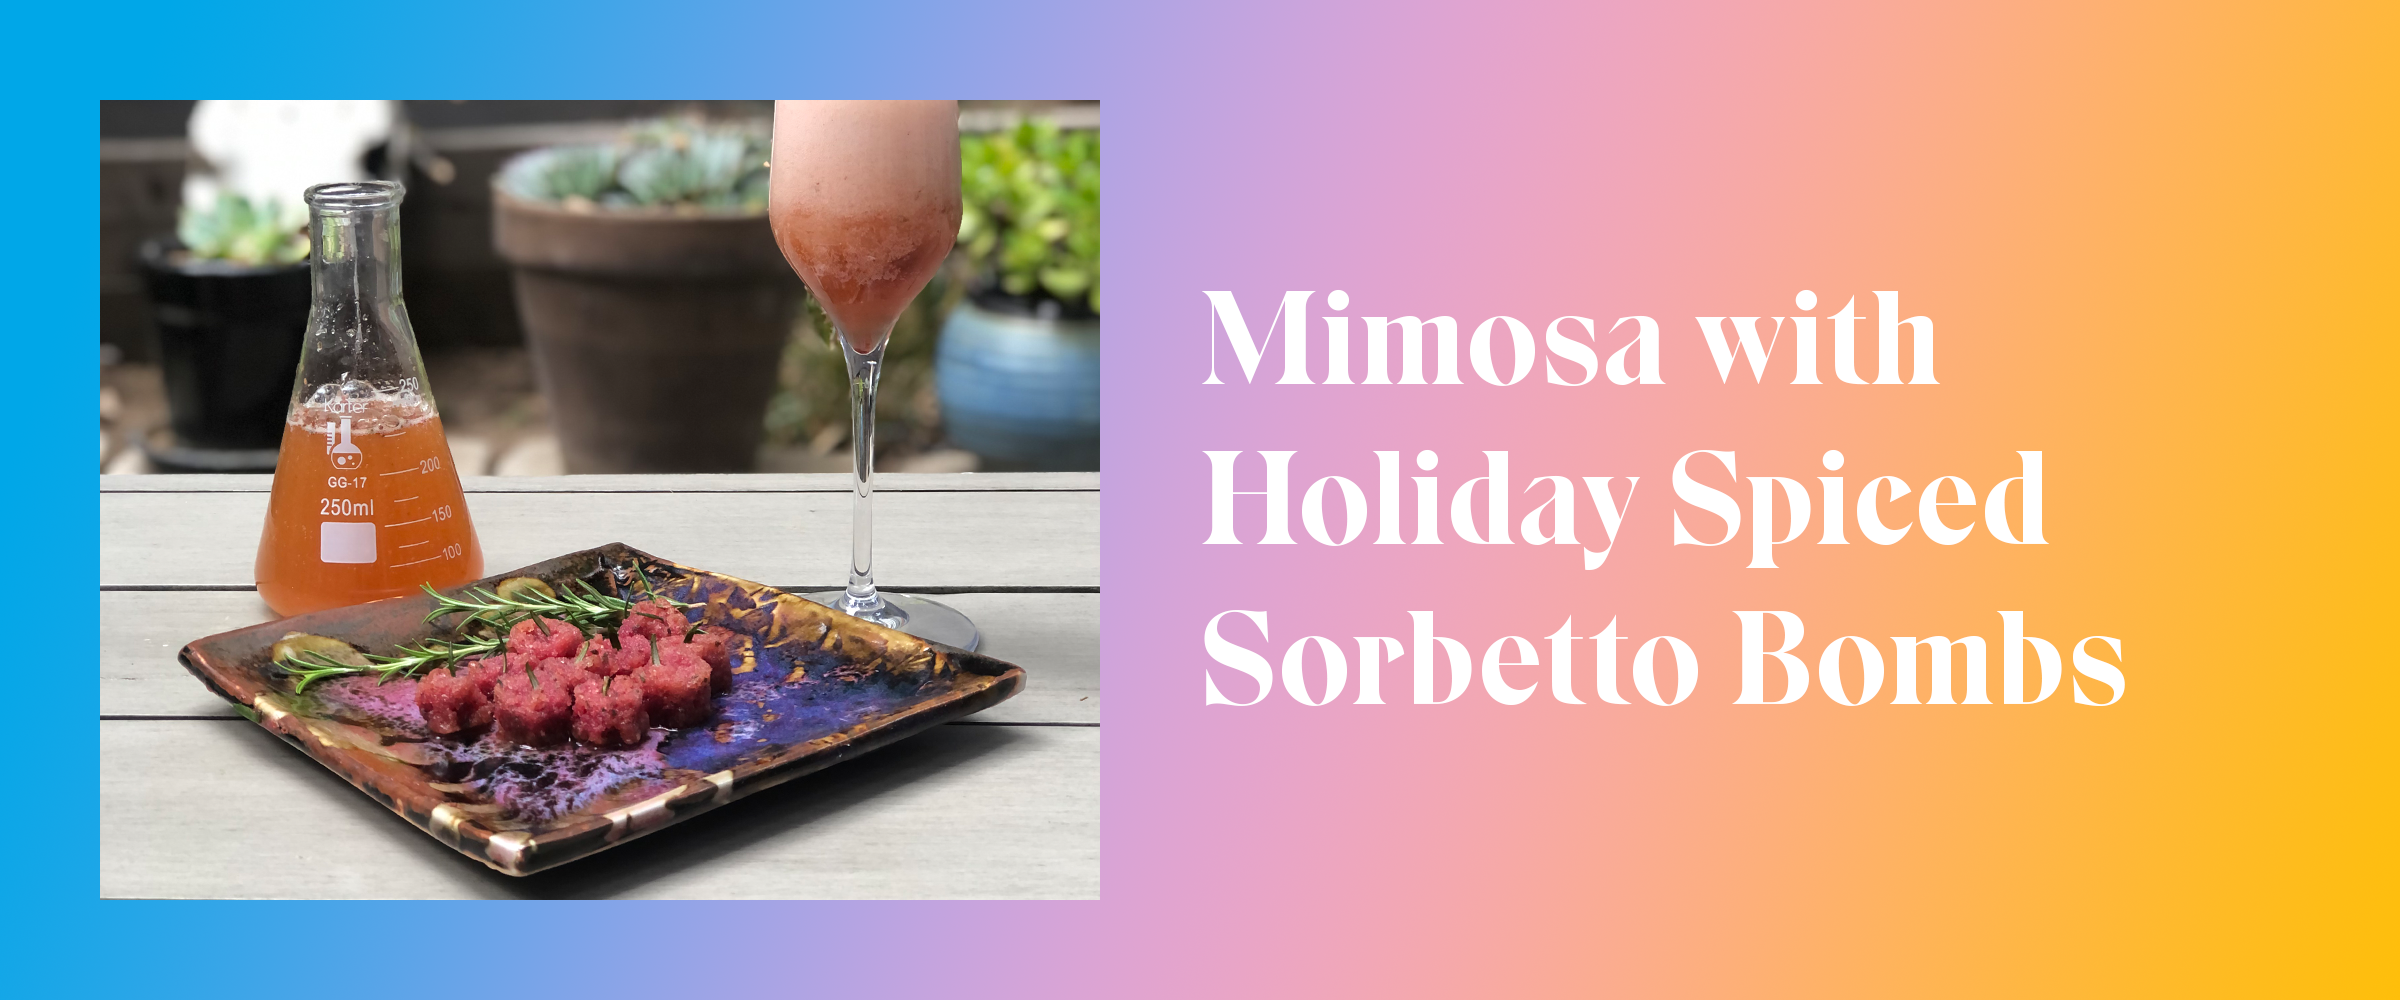 Mimosa with Holiday Spiced Sorbetto Bombs